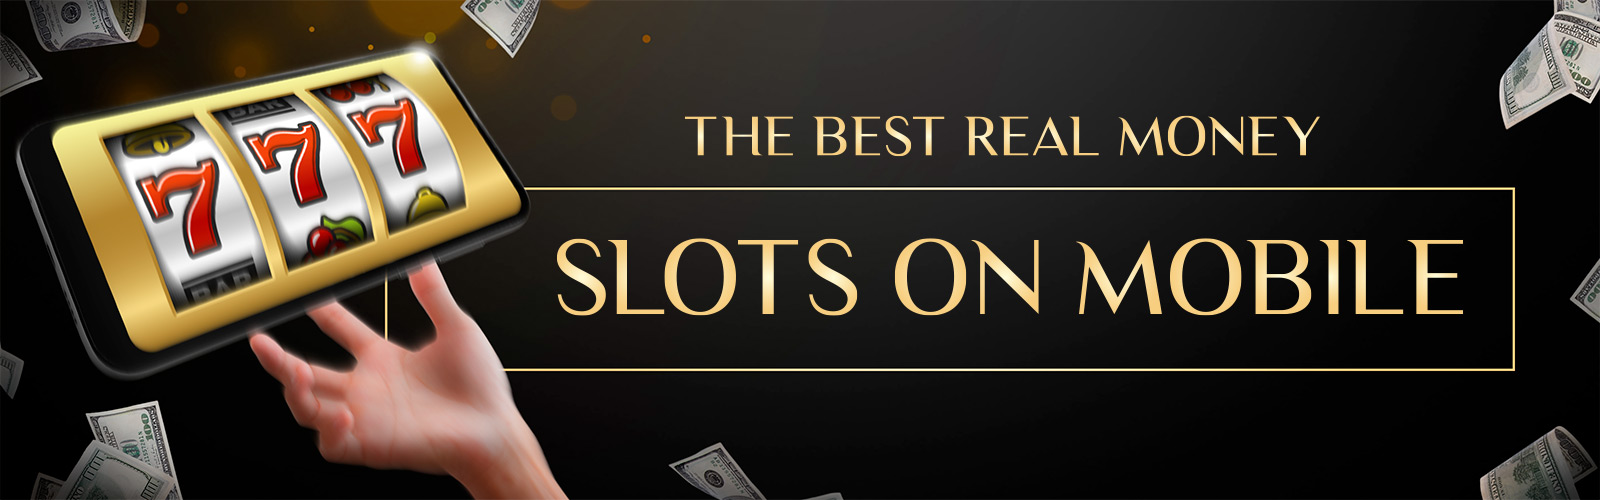 Real Money Slot Games On Mobile